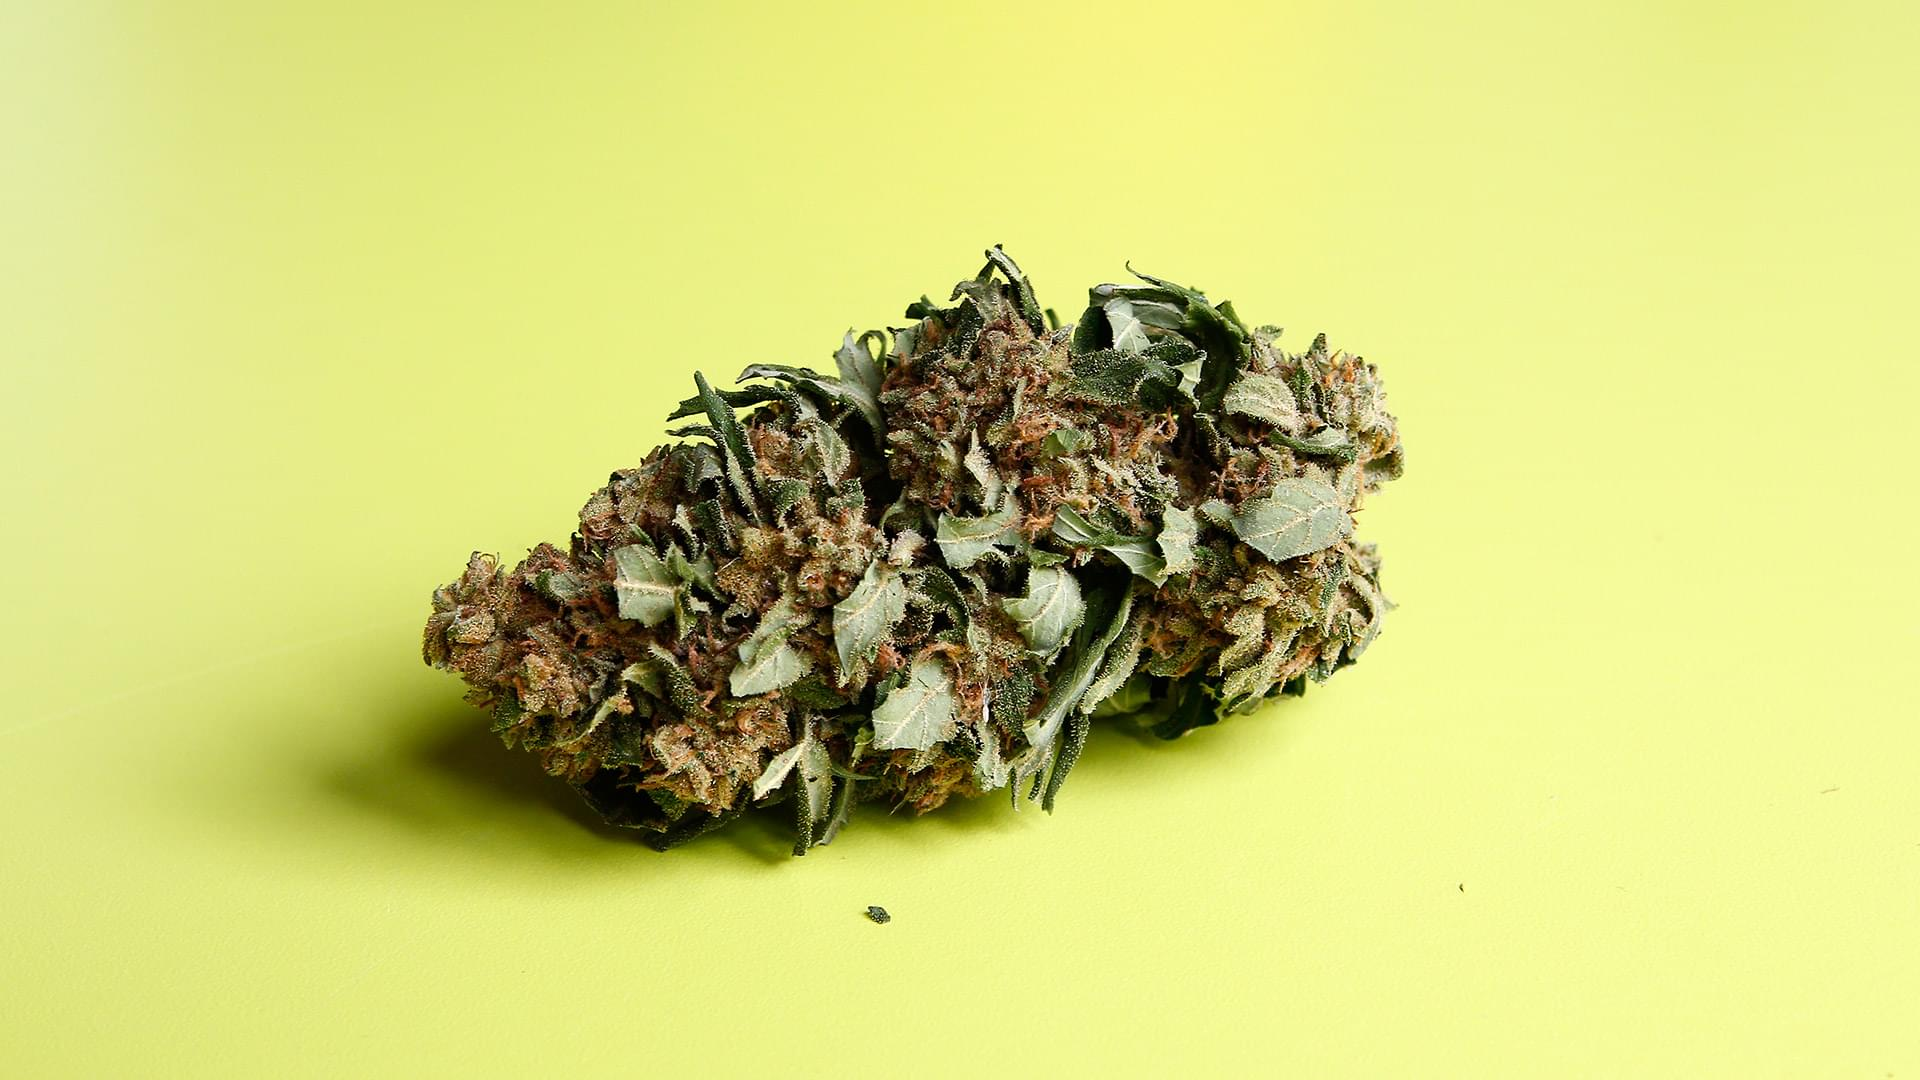 DEA Digs in on Marijuana: How Does the Decision Affect You?